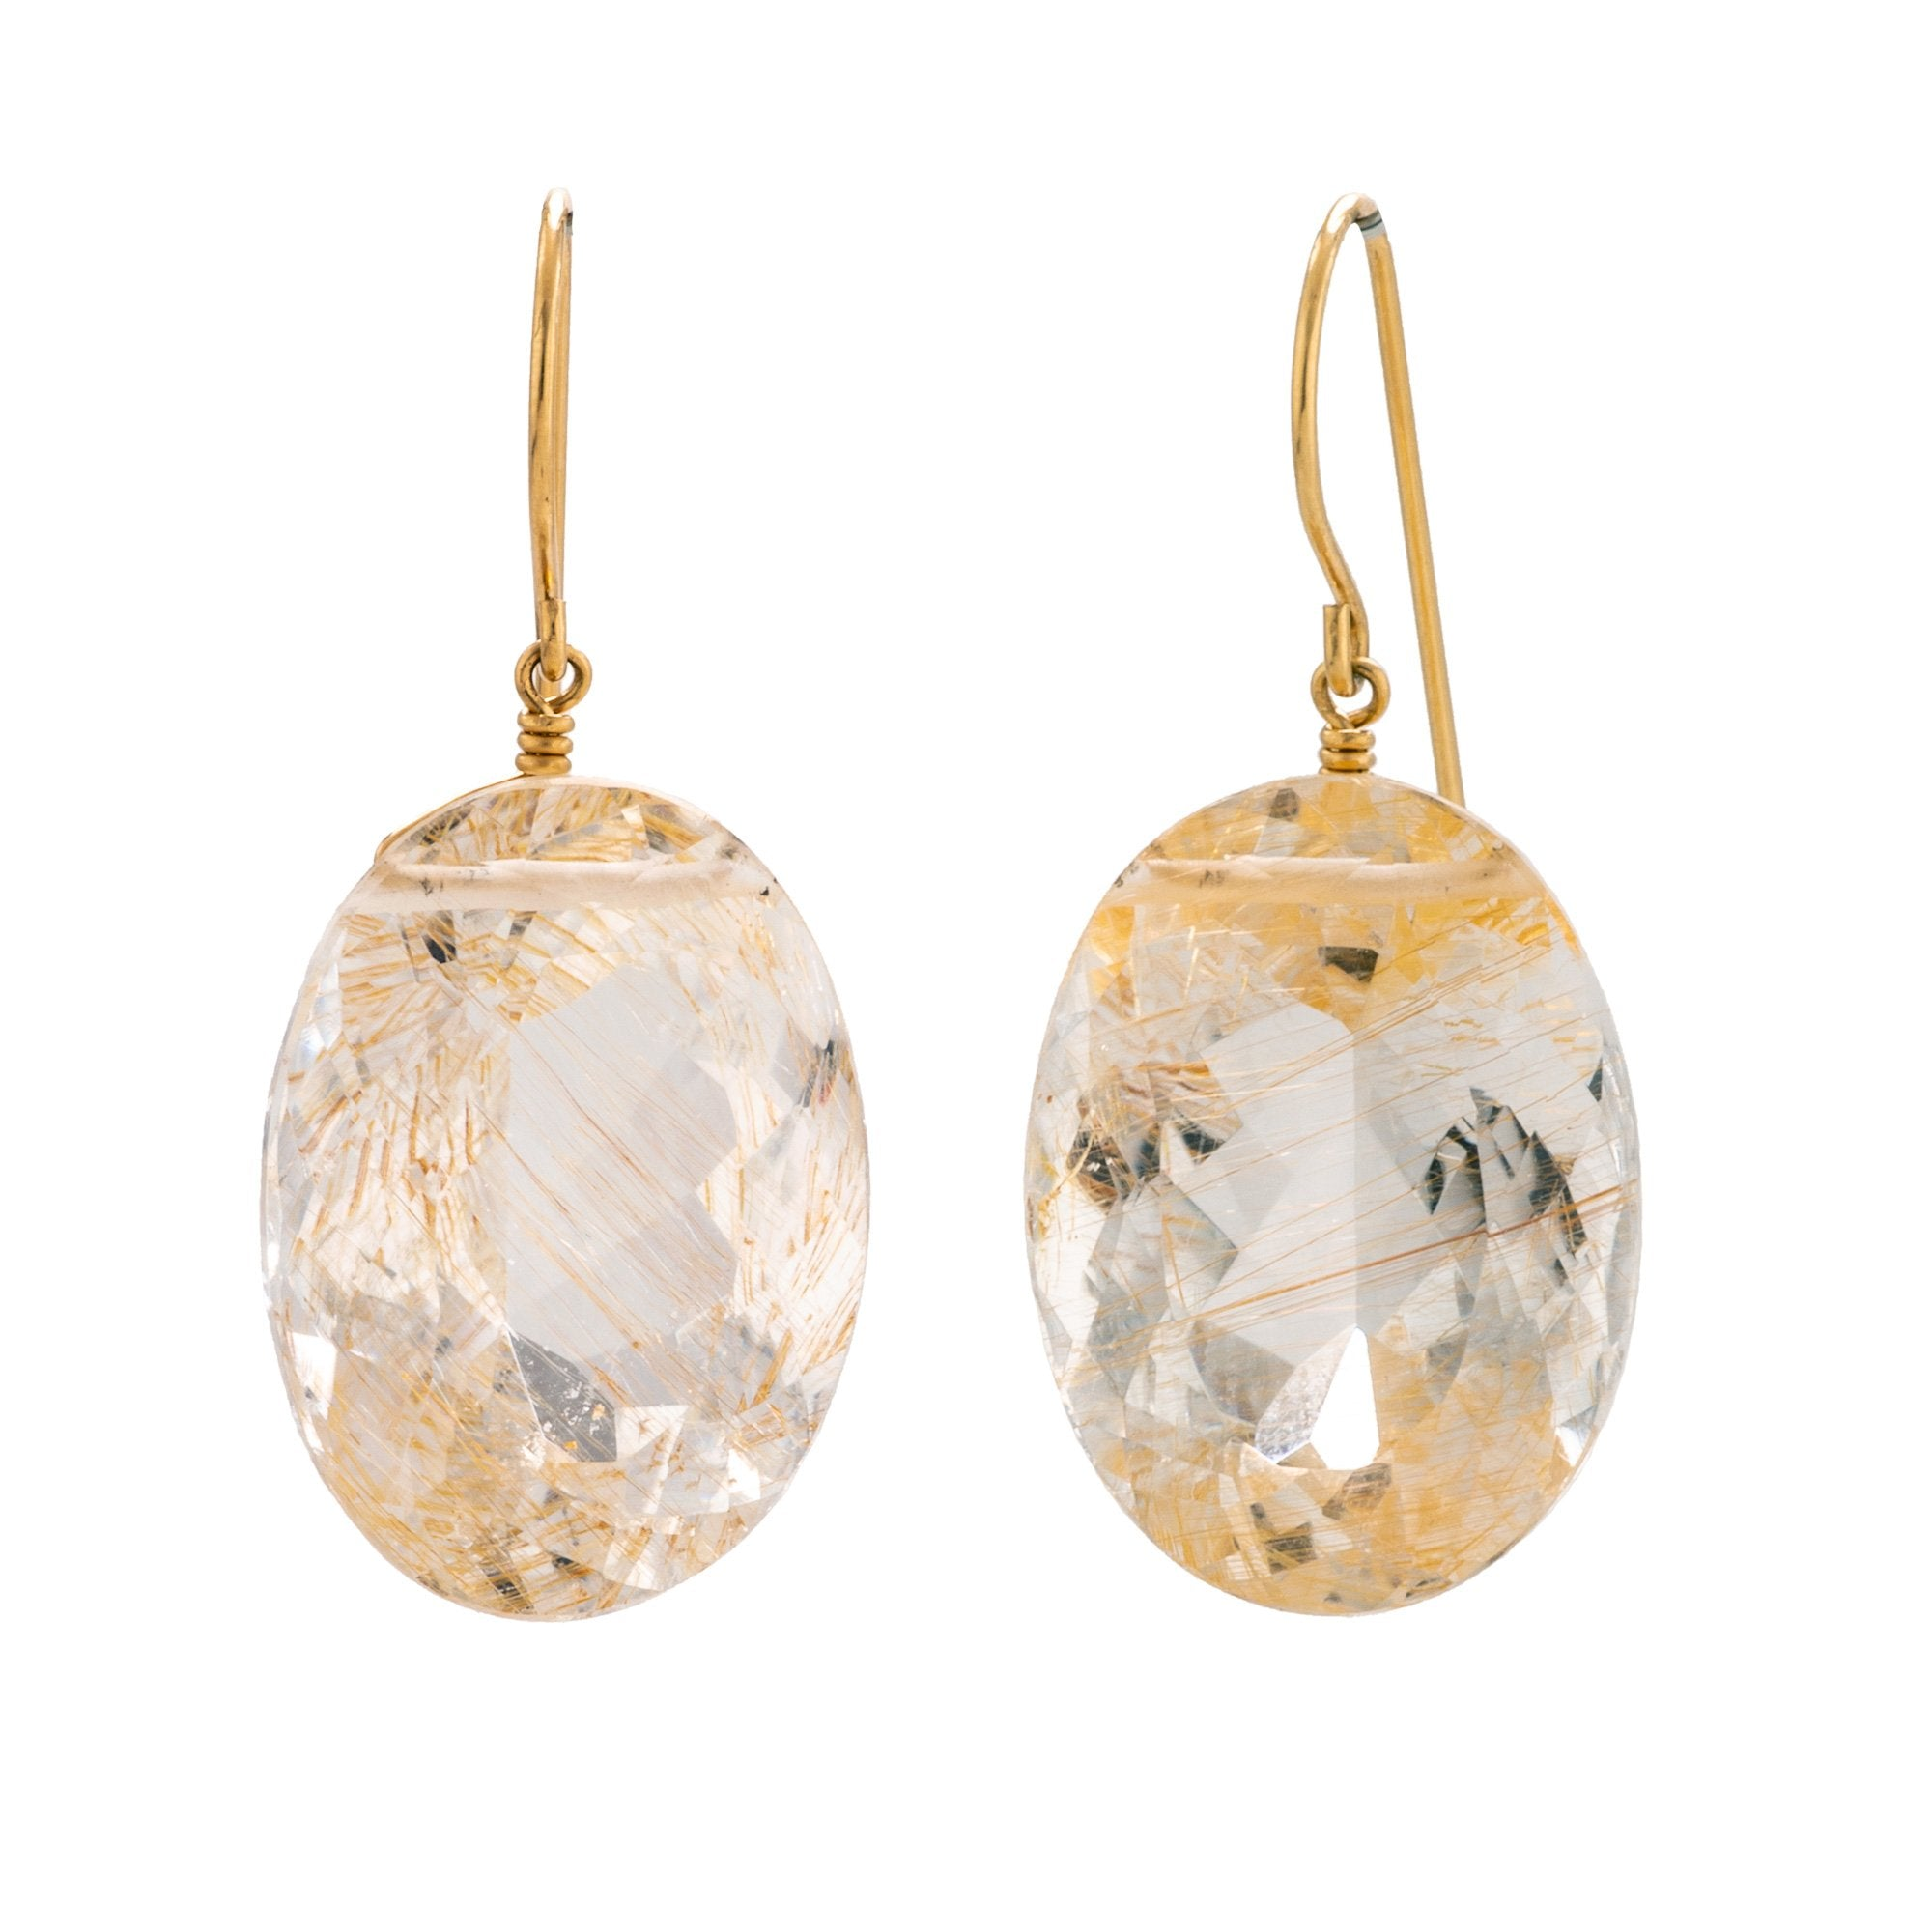 Glam i quartz earrings